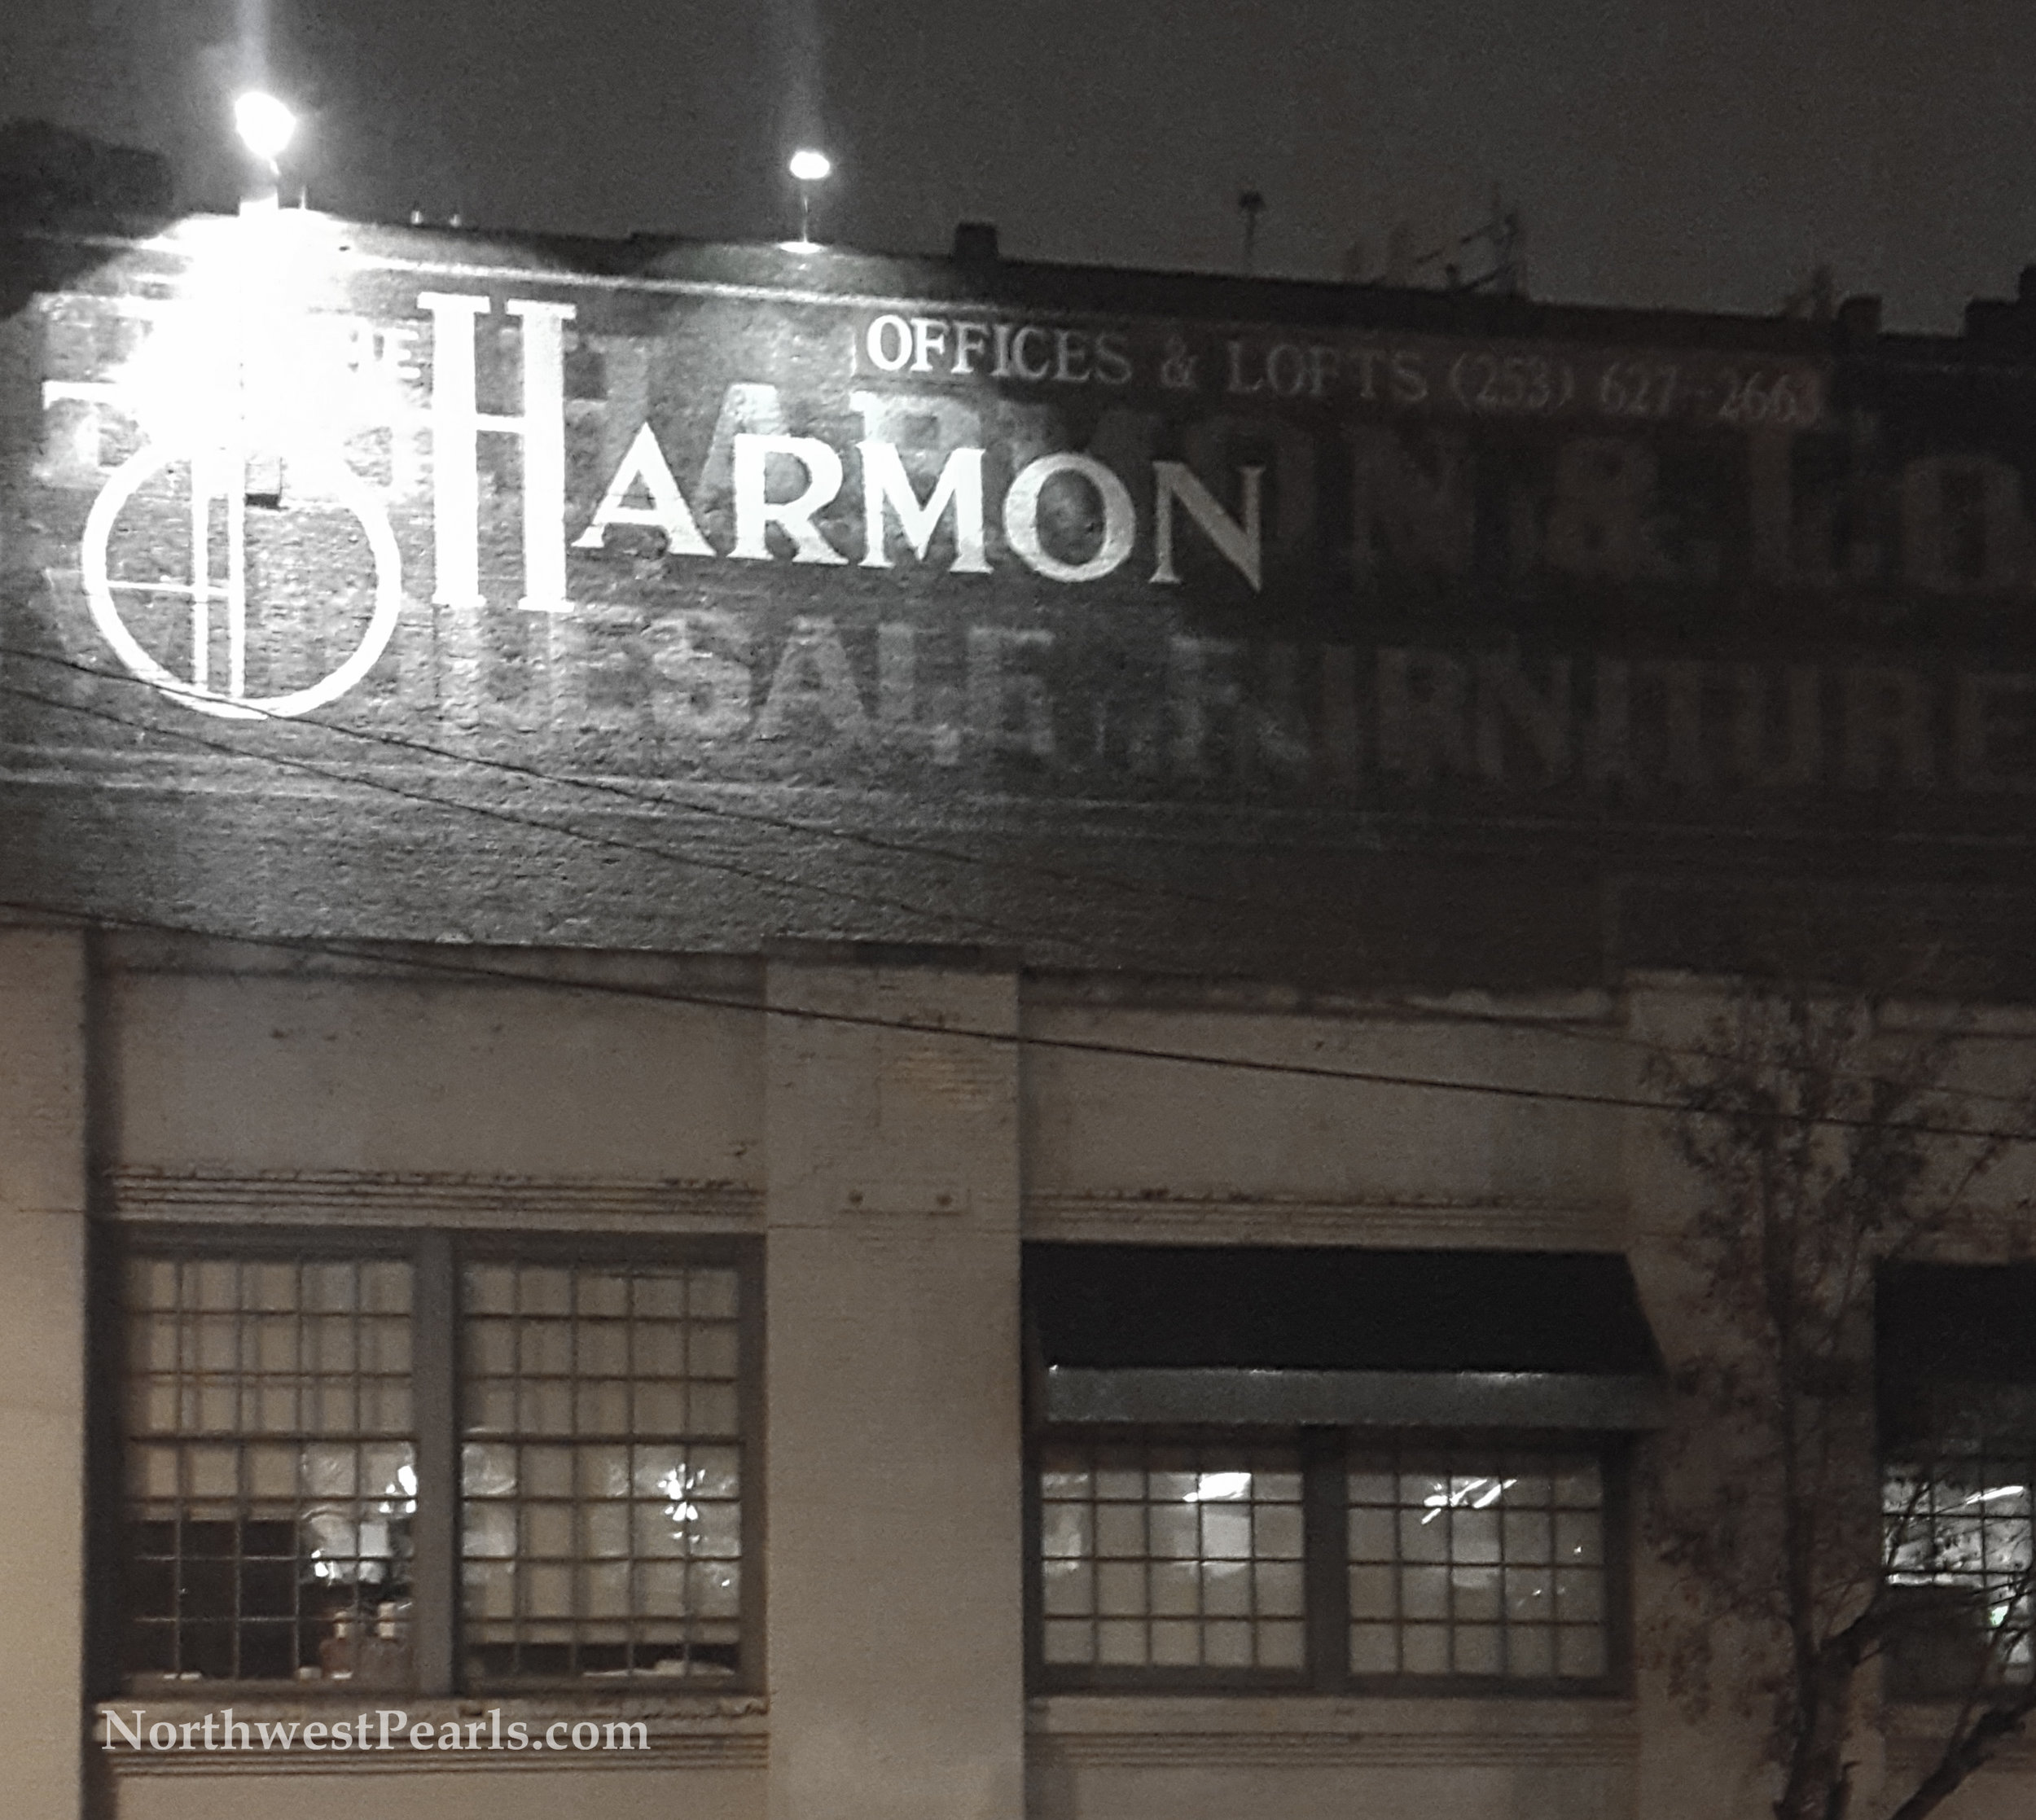 Northwest Pearls: The Harmon